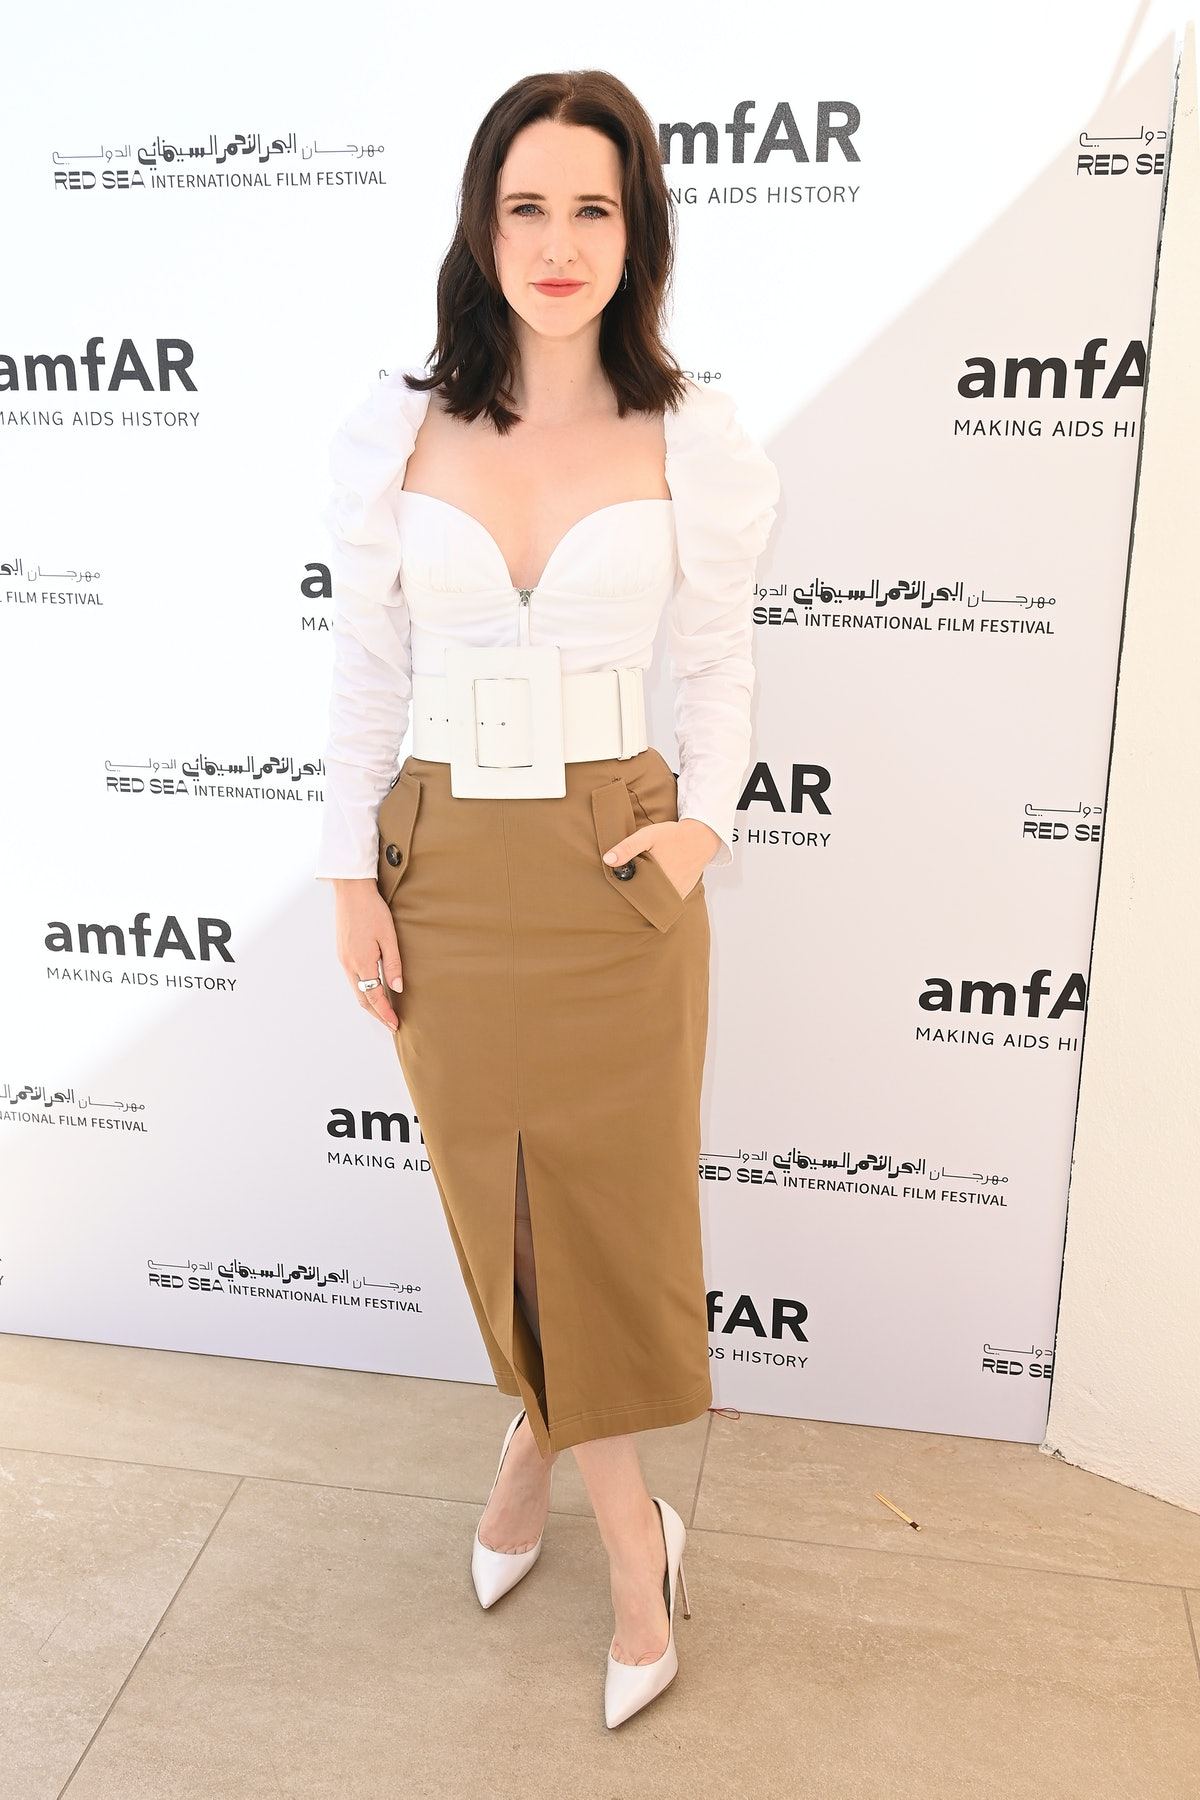 ANTIBES, FRANCE - JULY 15: Rachel Brosnahan attends celebration of Cinema, Pre-amfAR gala lunch hosted by the Red Sea International Film Festival during the 74th annual Cannes Film Festival on July 15, 2021 in Antibes, France. (Photo by Kate Green/Getty Images for The Red Sea International Film Festival)